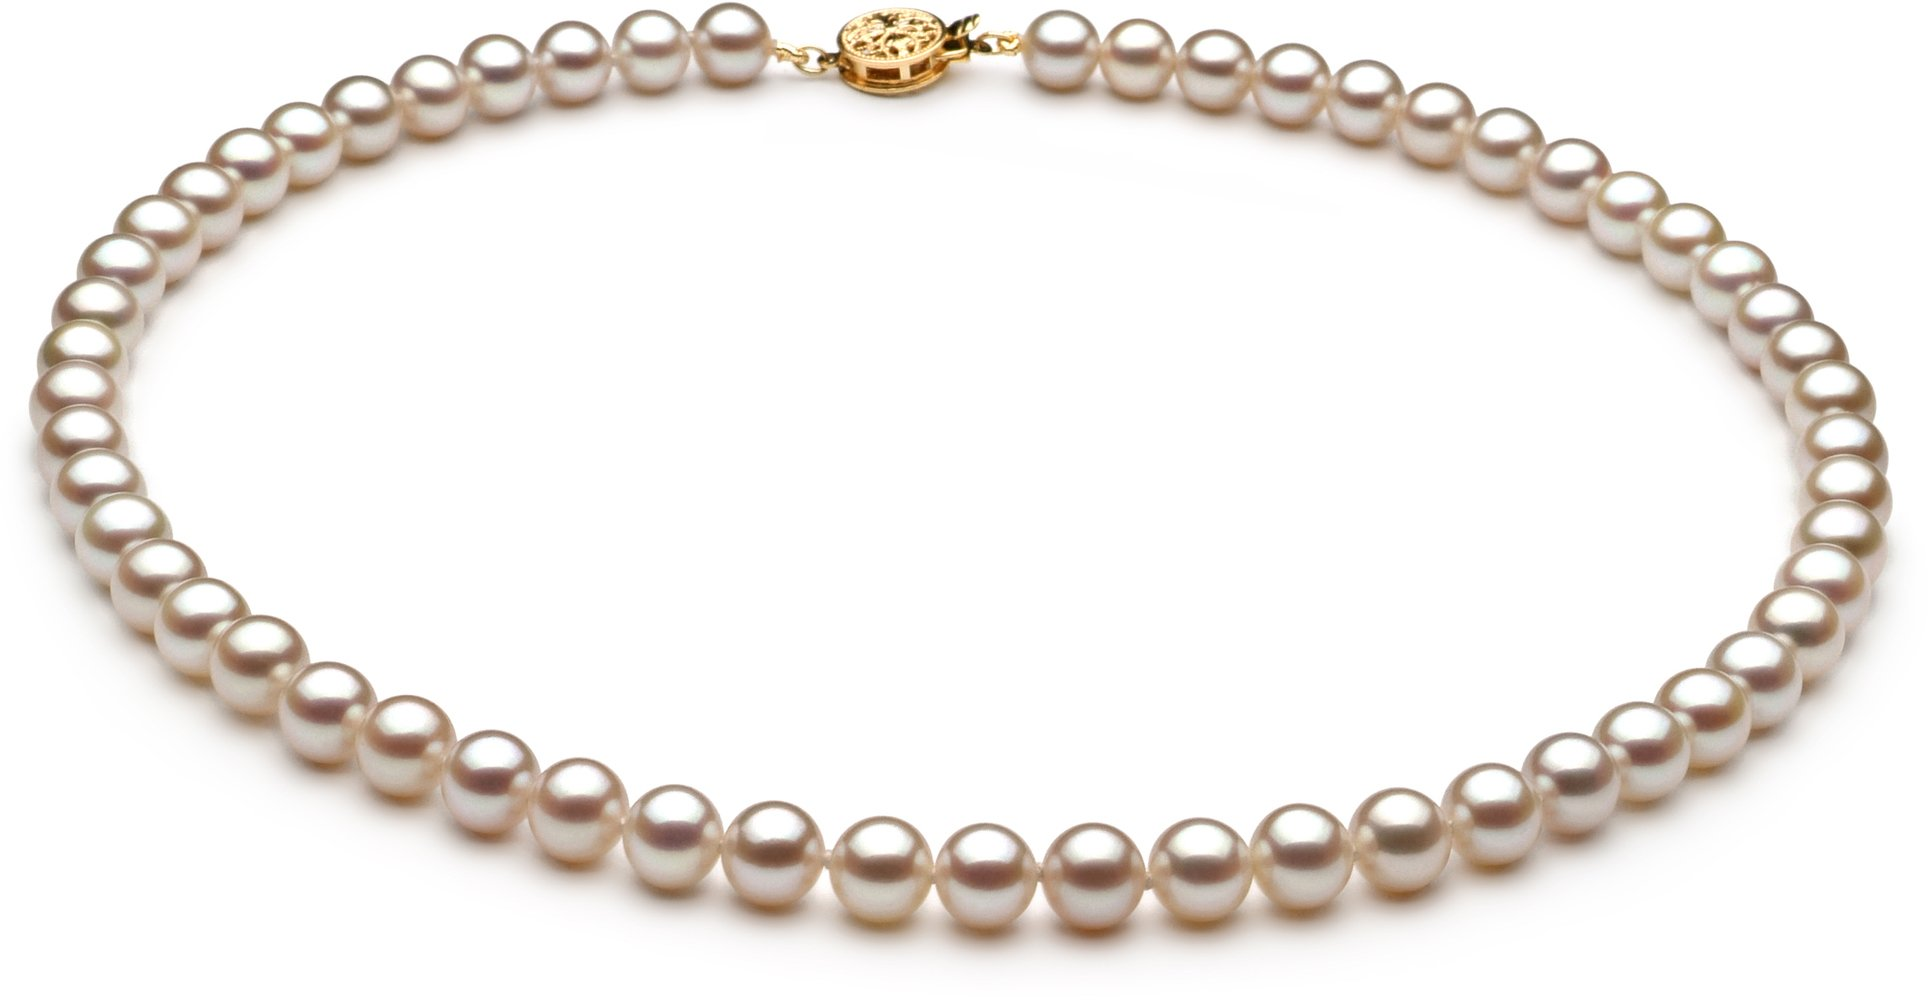 PearlsOnly White 6-7mm AAAA Quality Freshwater Cultured Pearl Necklace-16 in Chocker length